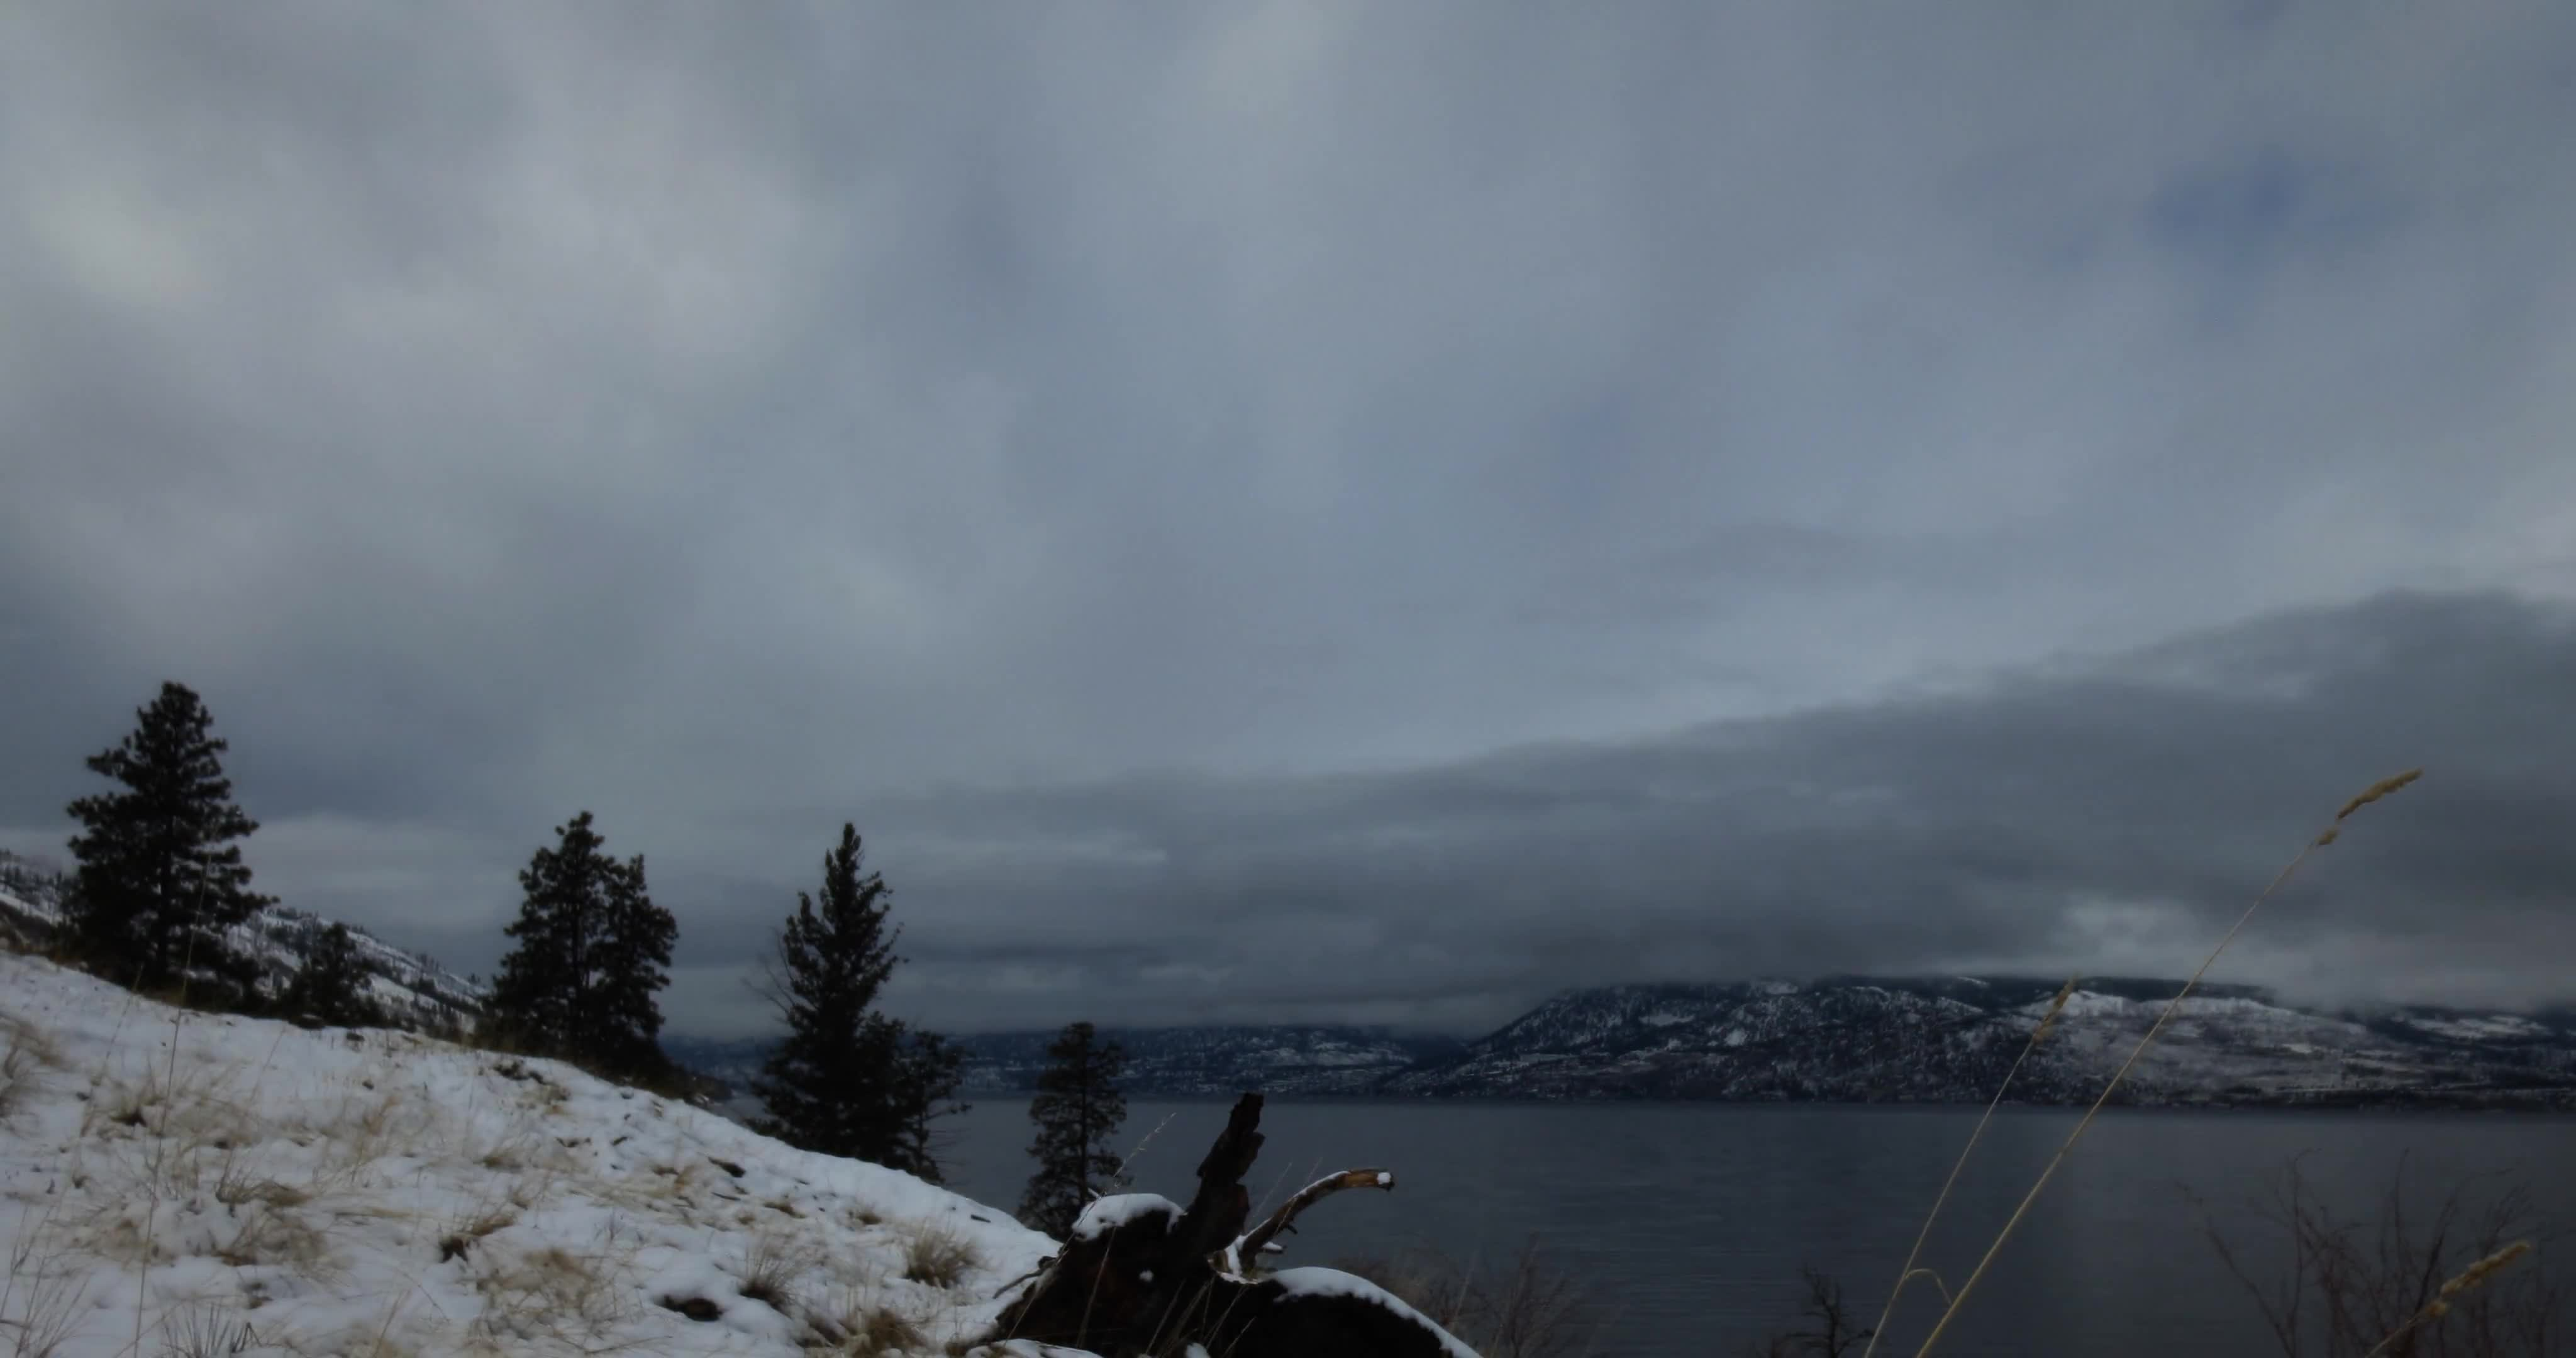 Okanagan spring snow melting sunset